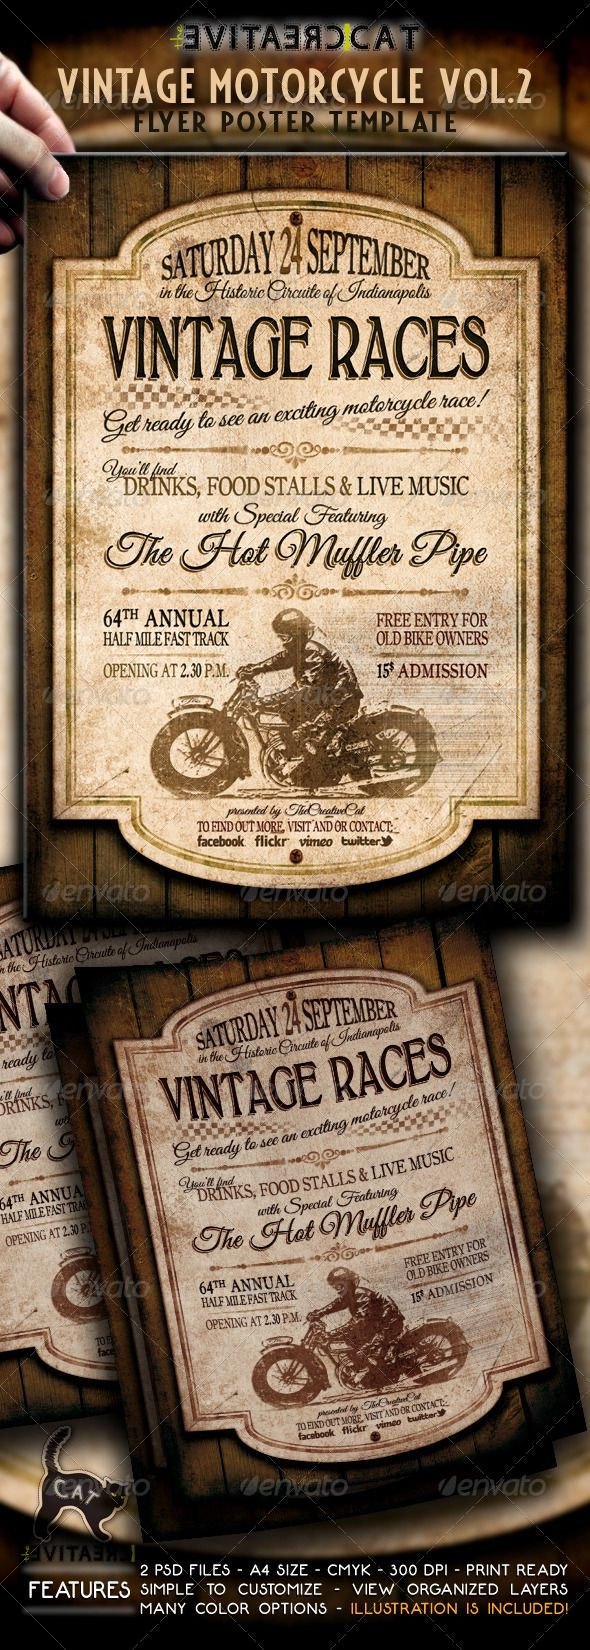 vintage motorcycle flyer poster vol 2 print templates flyers events